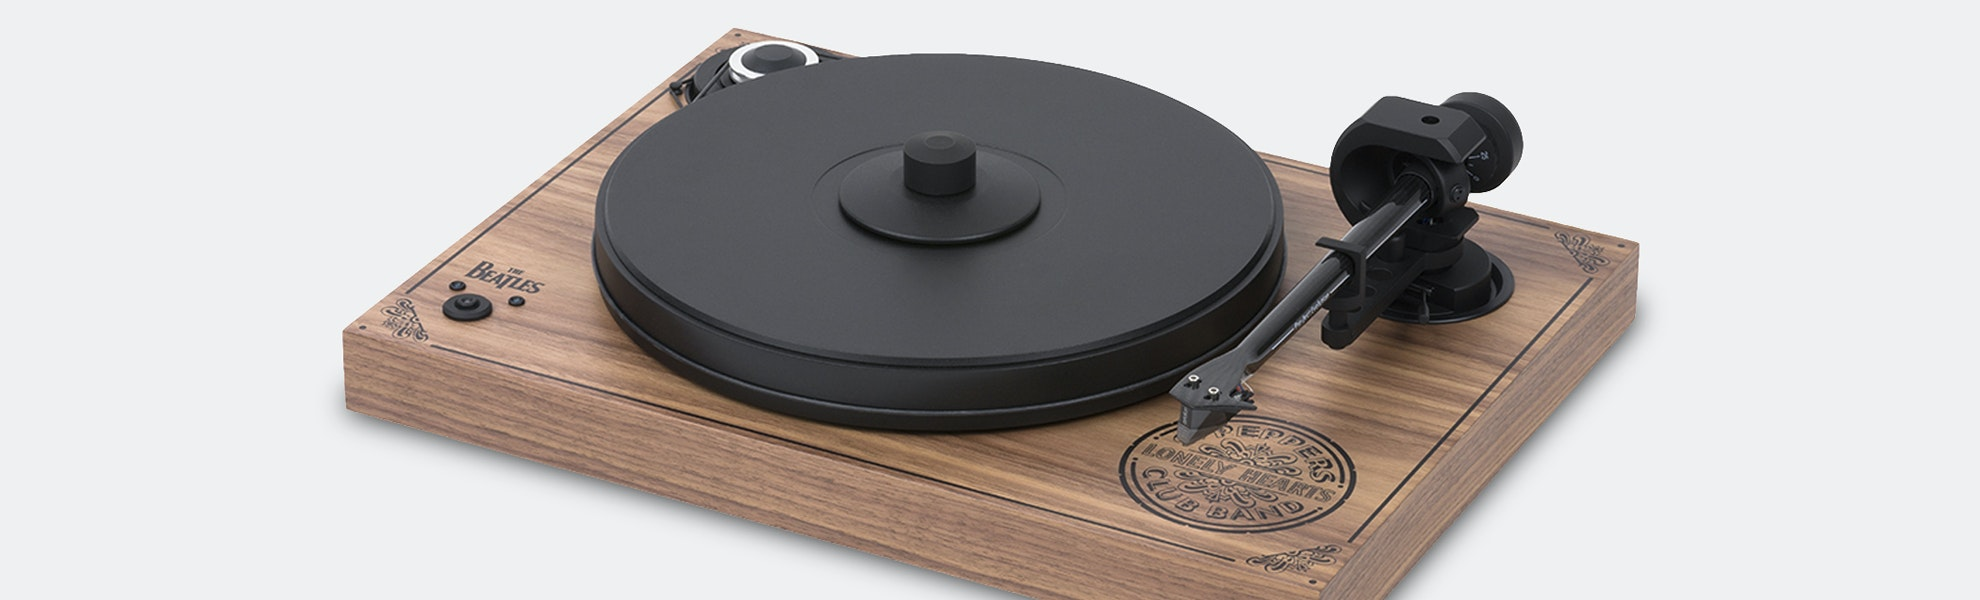 Pro-Ject Beatles Turntables